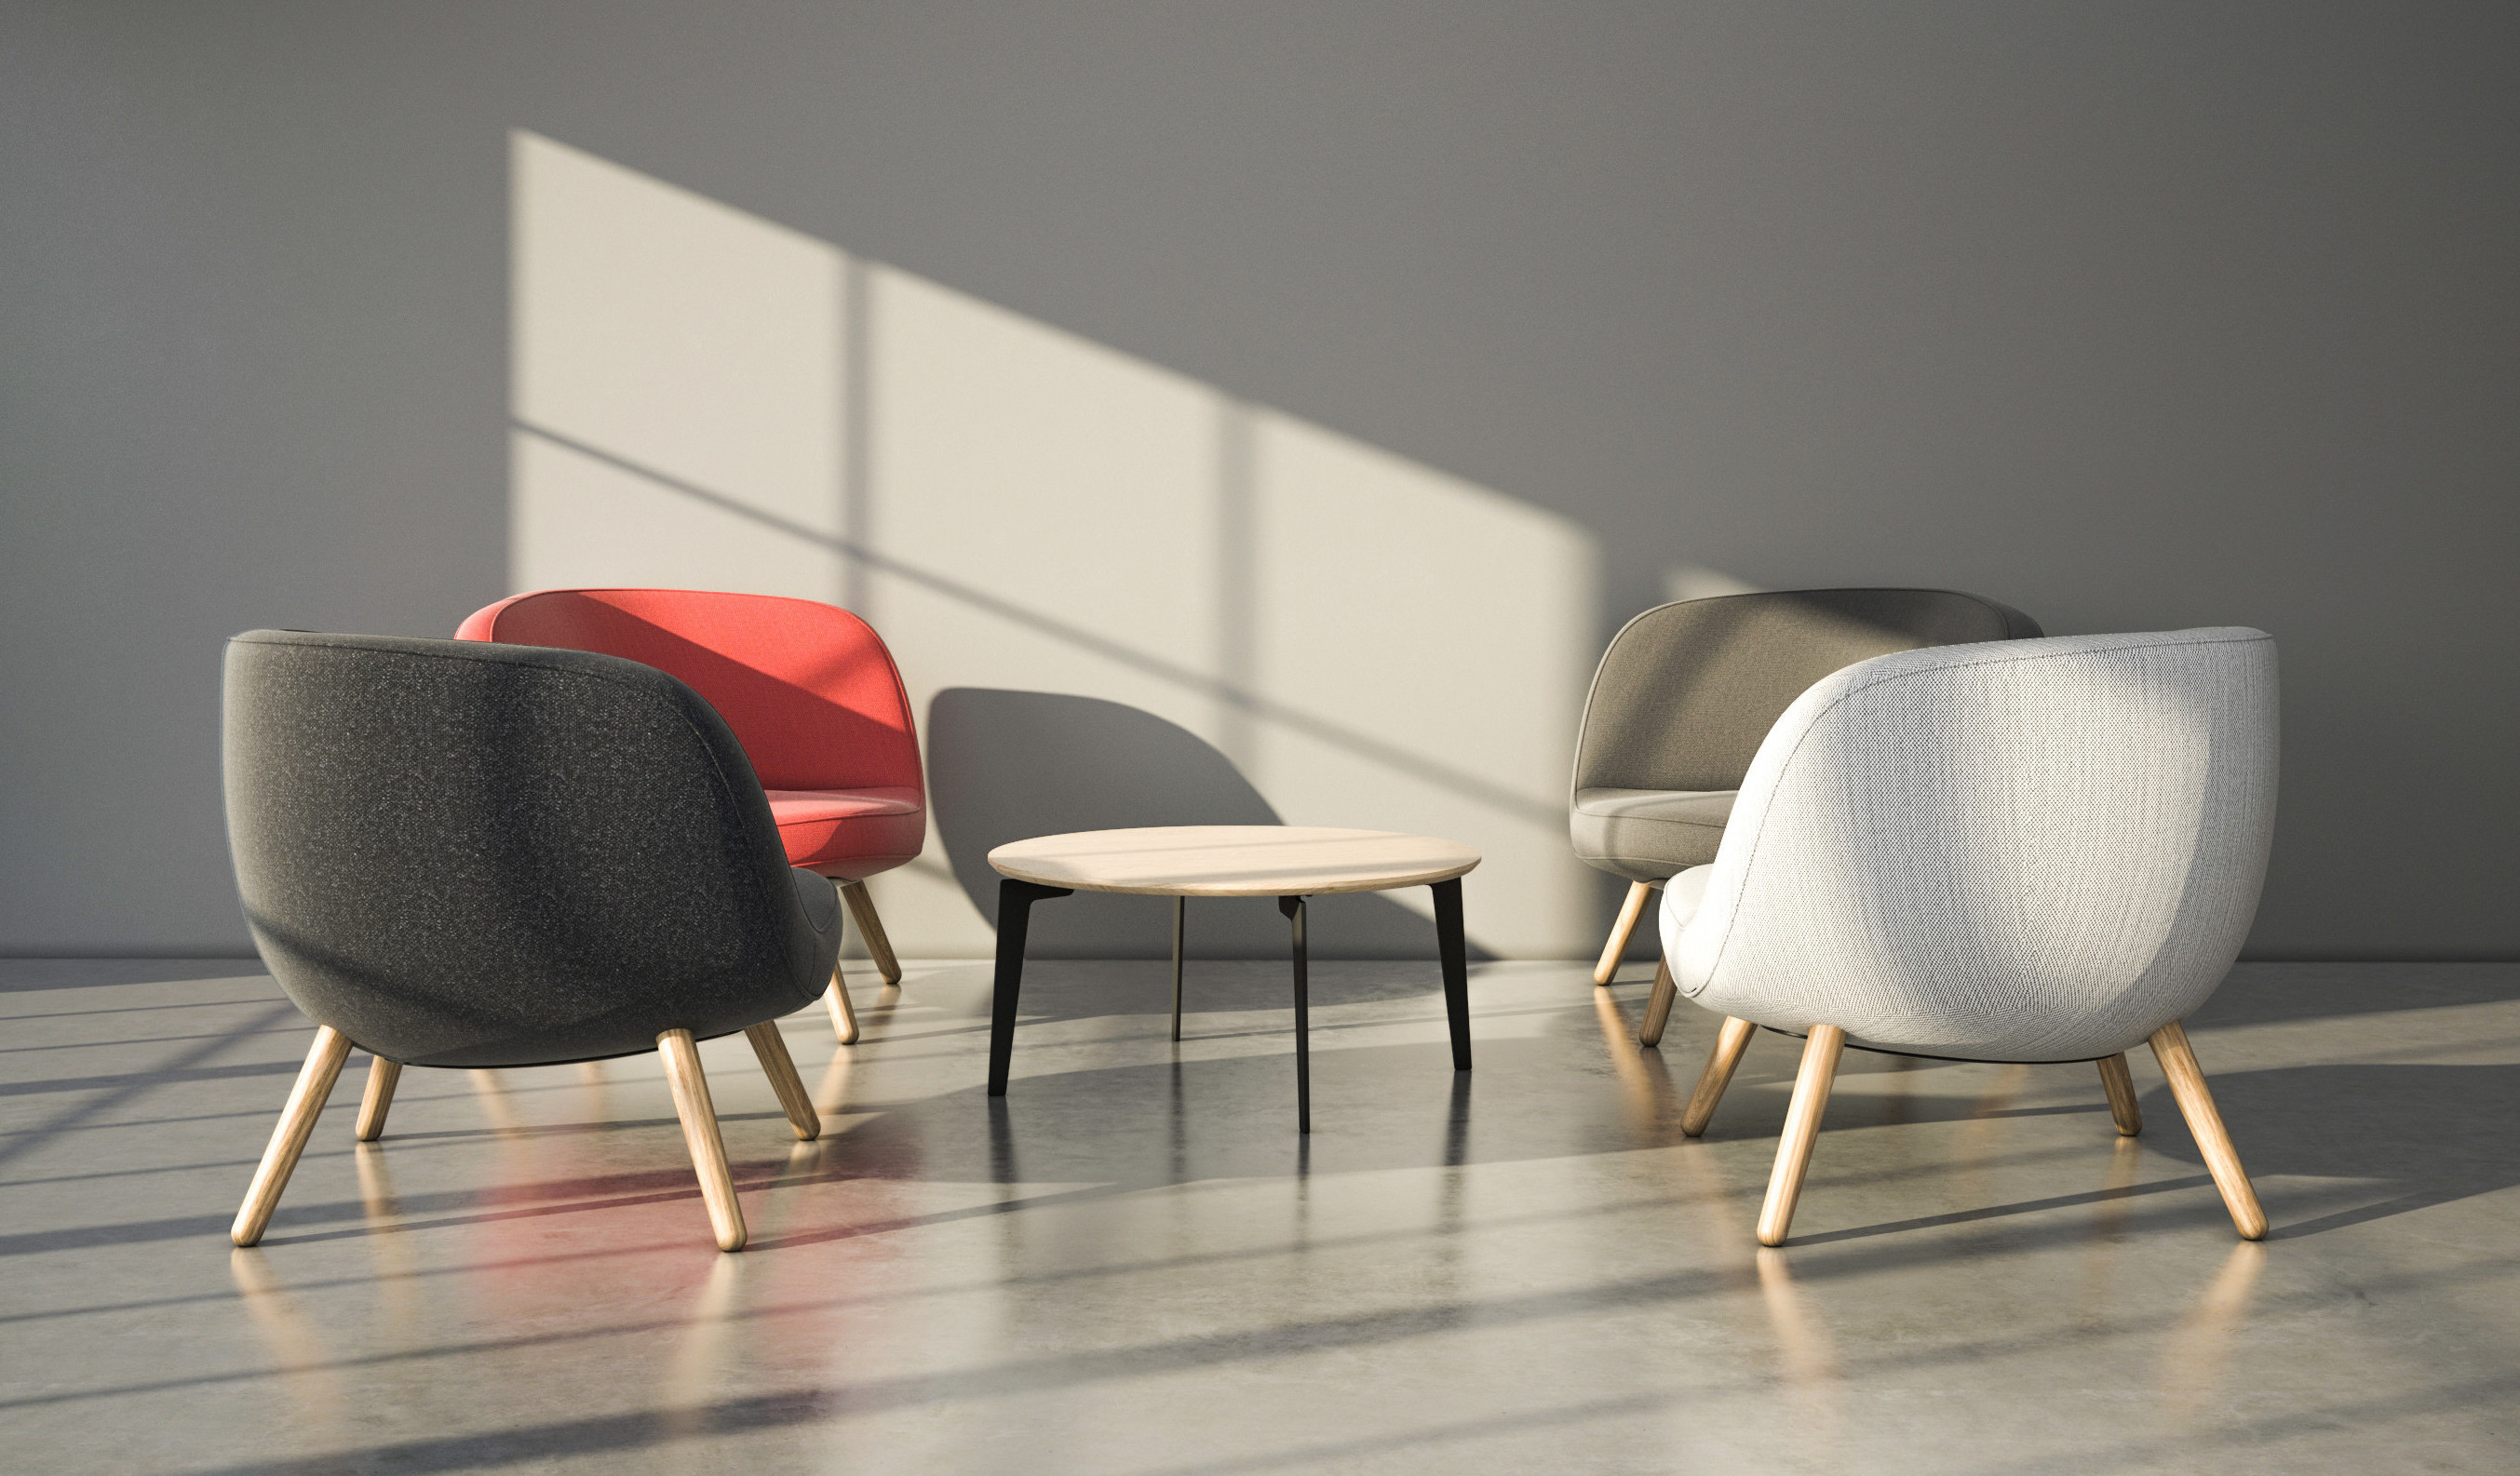 Fritz hansen via57 lounge chair design kibisi for Scandic design